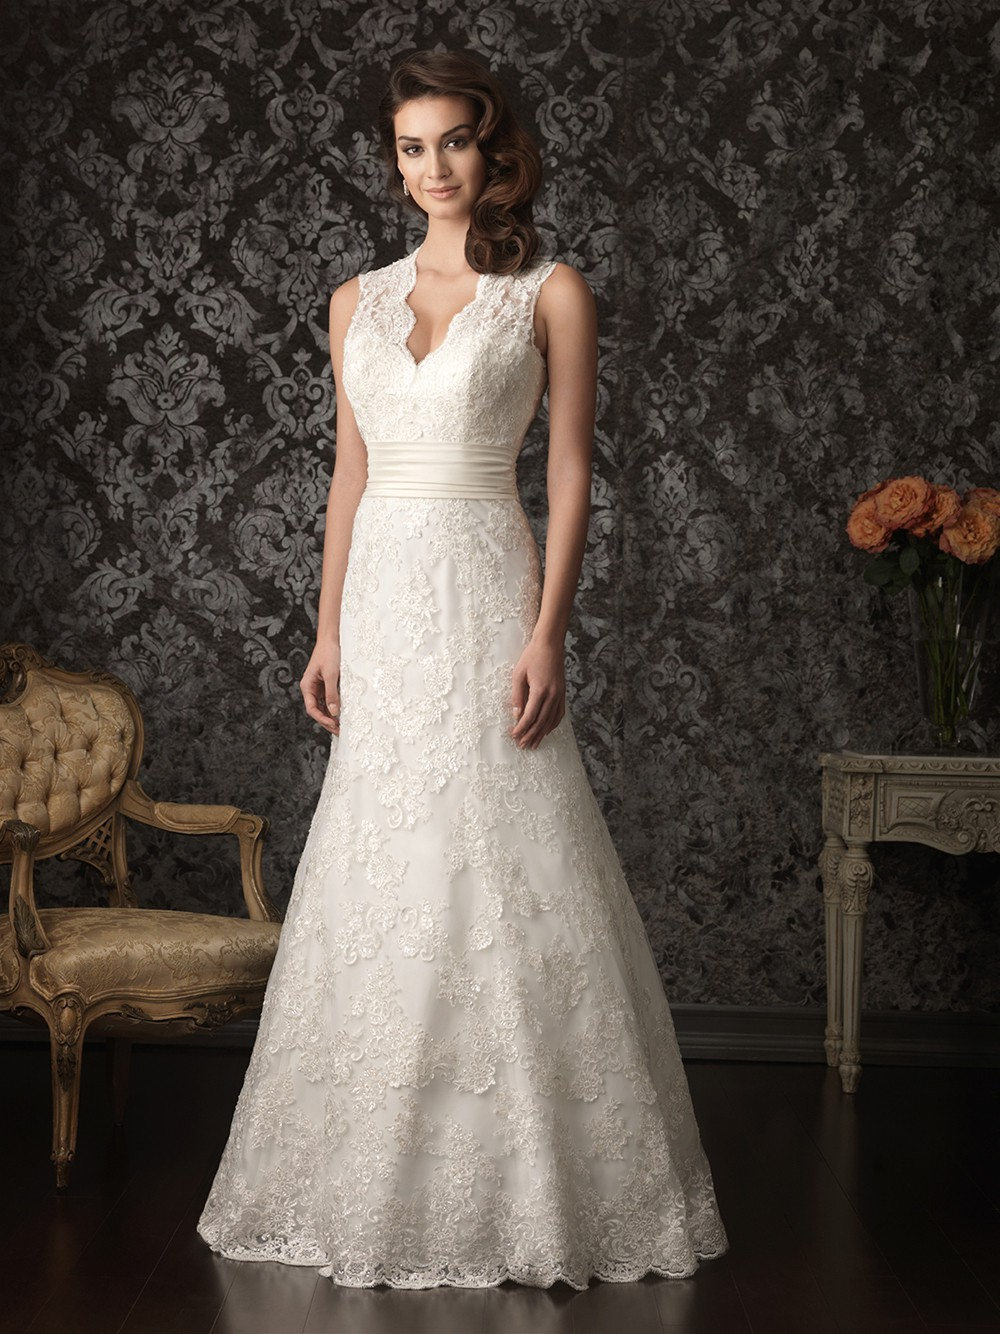 traditional lace wedding dresses photo - 1